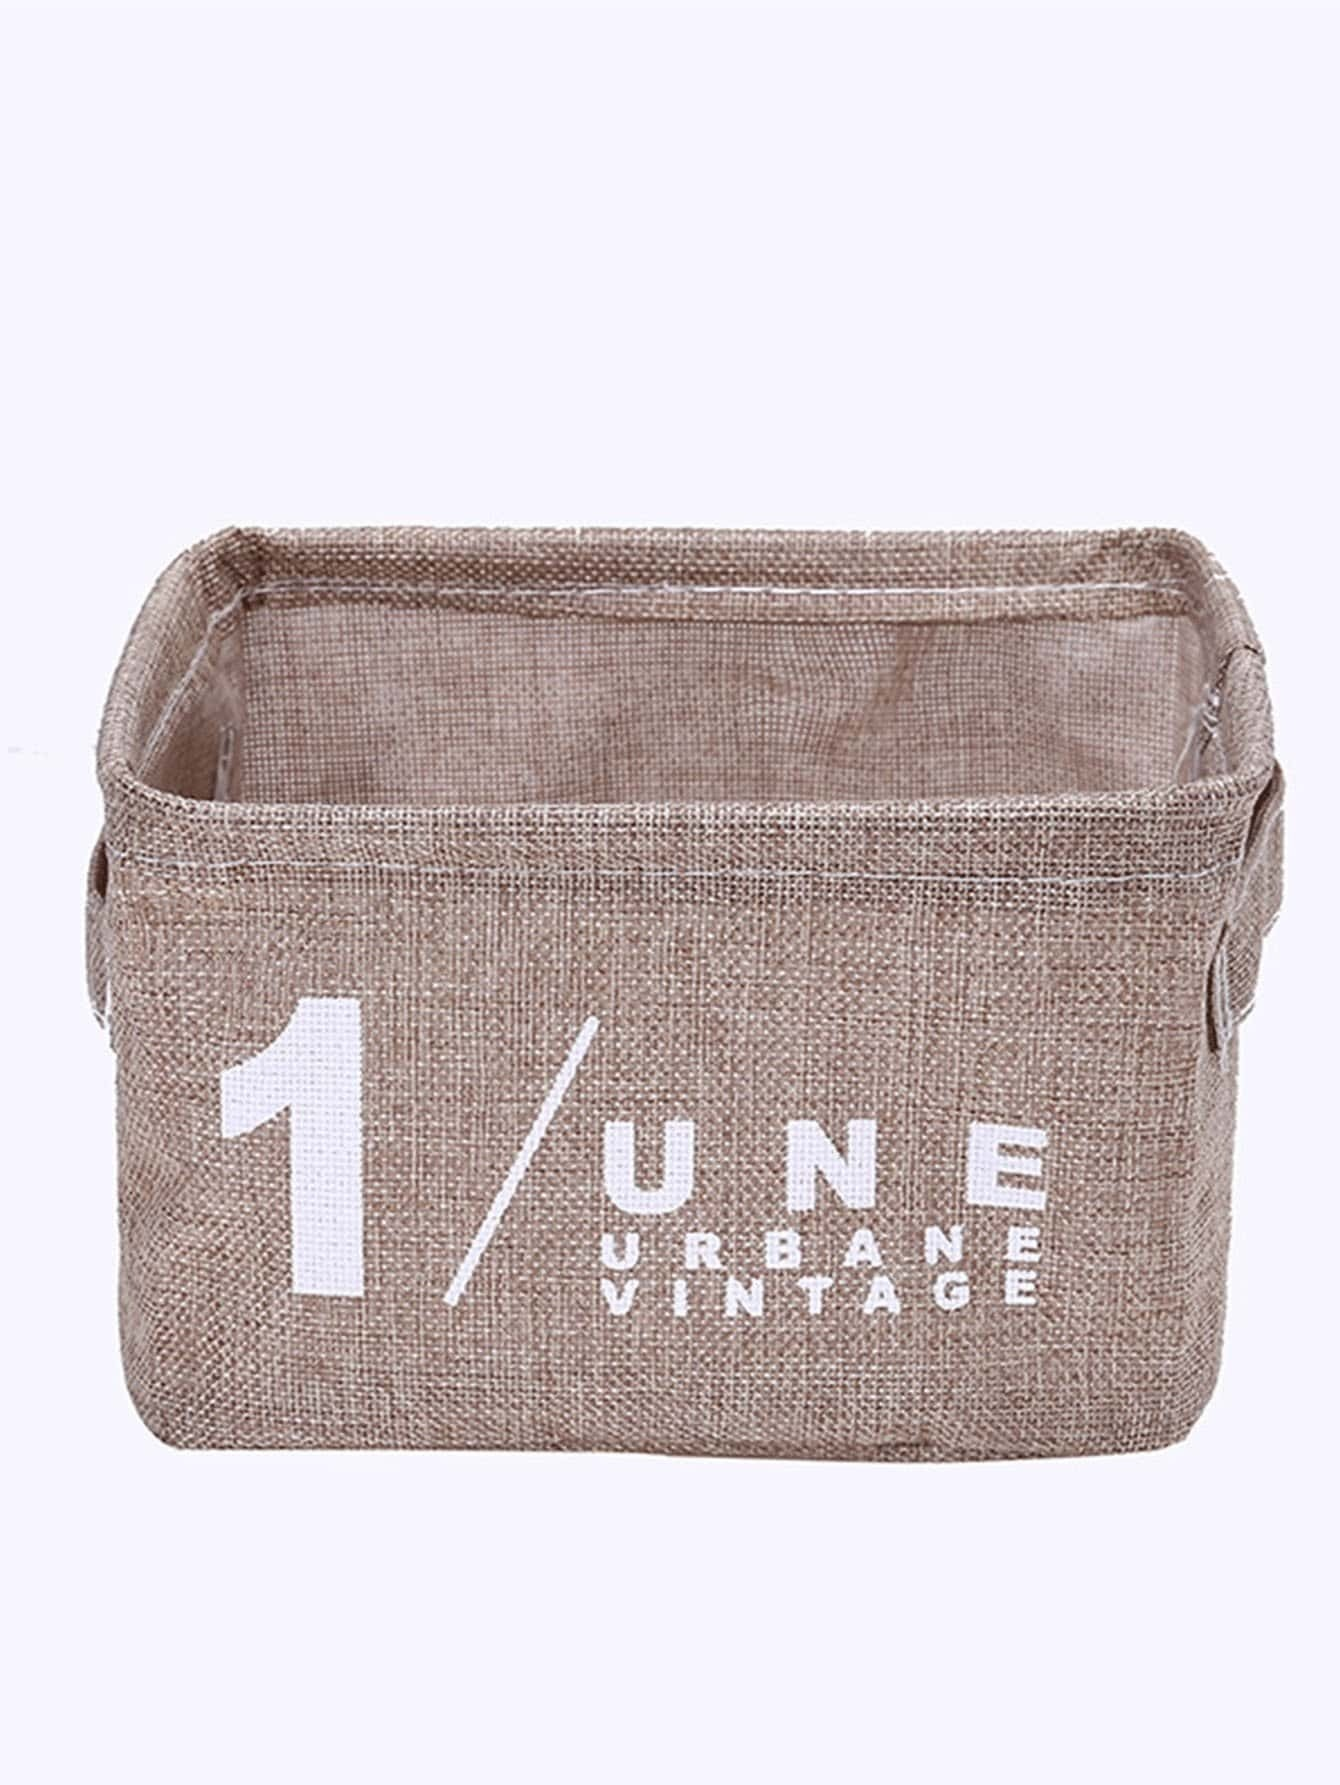 Linen Storage Box multifunctional wooden storage box mobile phone repair tool box motherboard accessories storage box